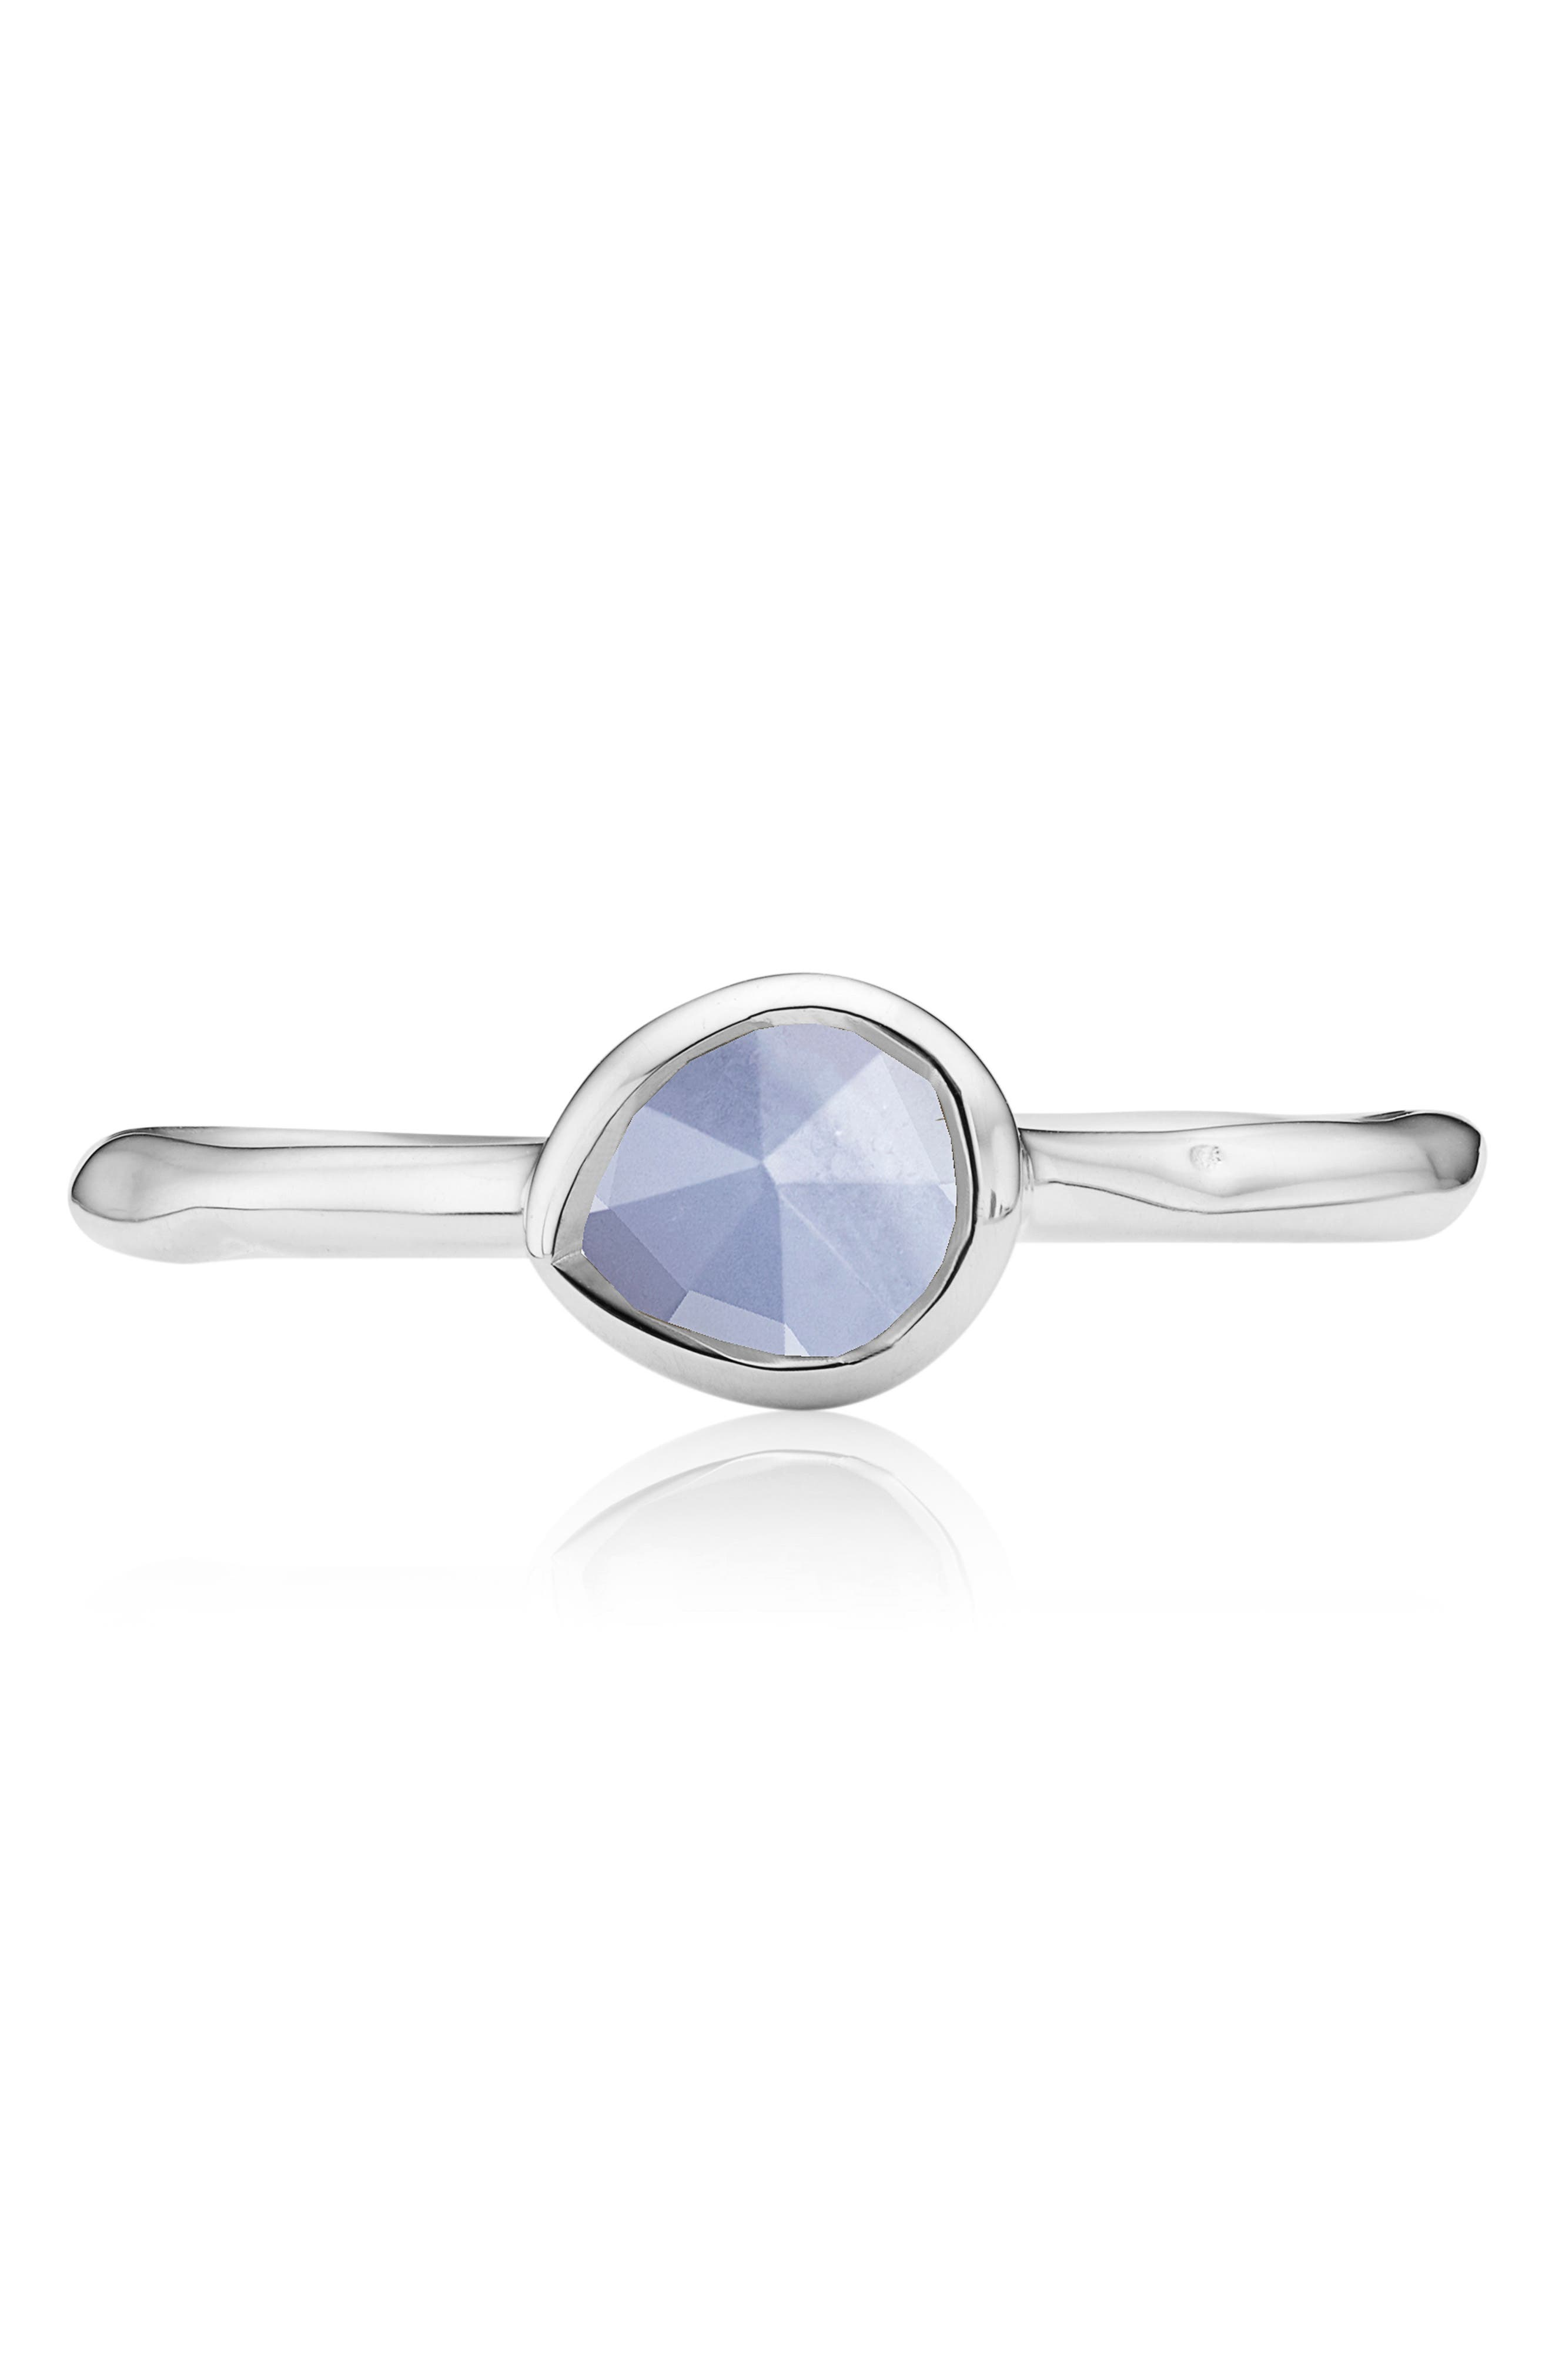 MONICA VINADER, Siren Small Stacking Ring, Alternate thumbnail 3, color, SILVER/ BLUE LACE AGATE